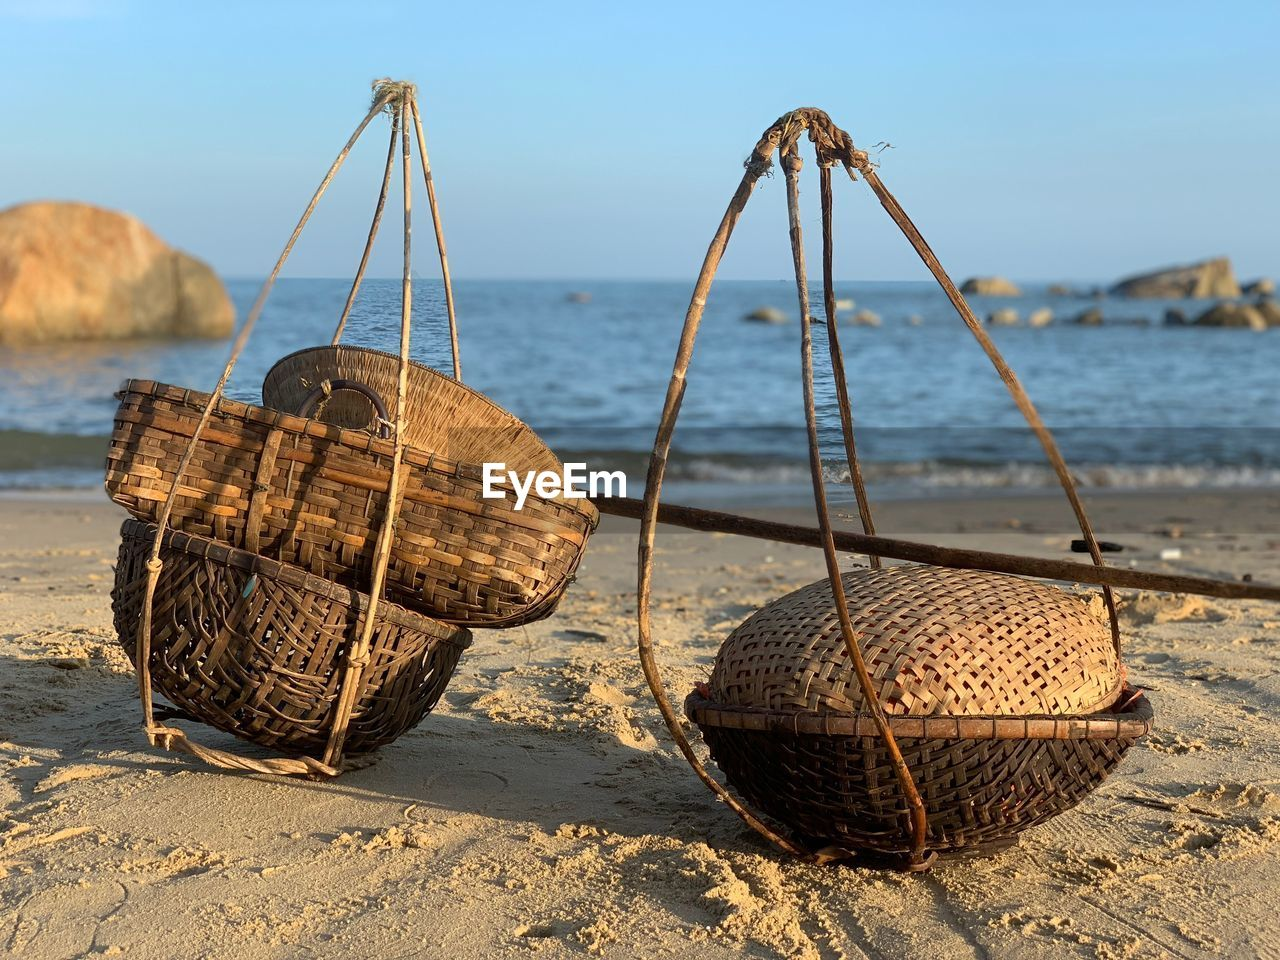 nature, basket, focus on foreground, beach, container, land, sea, sunlight, day, no people, sand, water, sky, outdoors, rusty, close-up, brown, transportation, food and drink